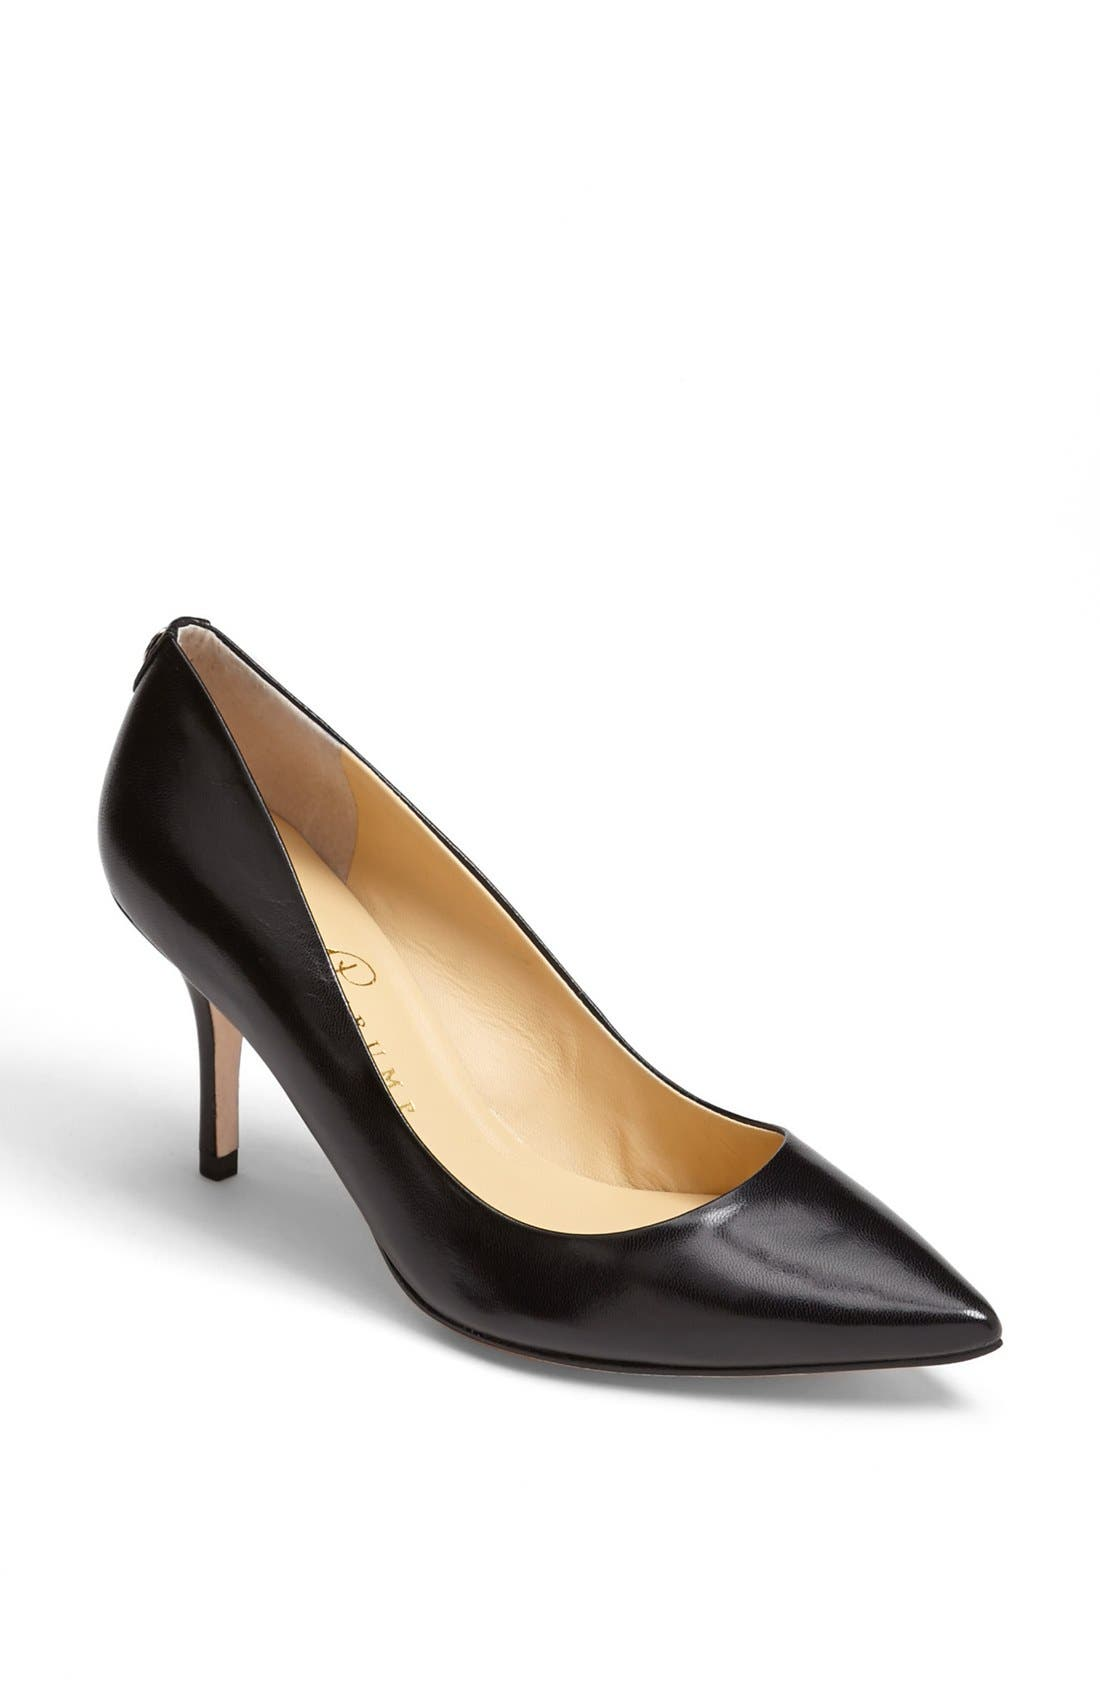 'Natalie' Pointed Toe Pump,                         Main,                         color, 001